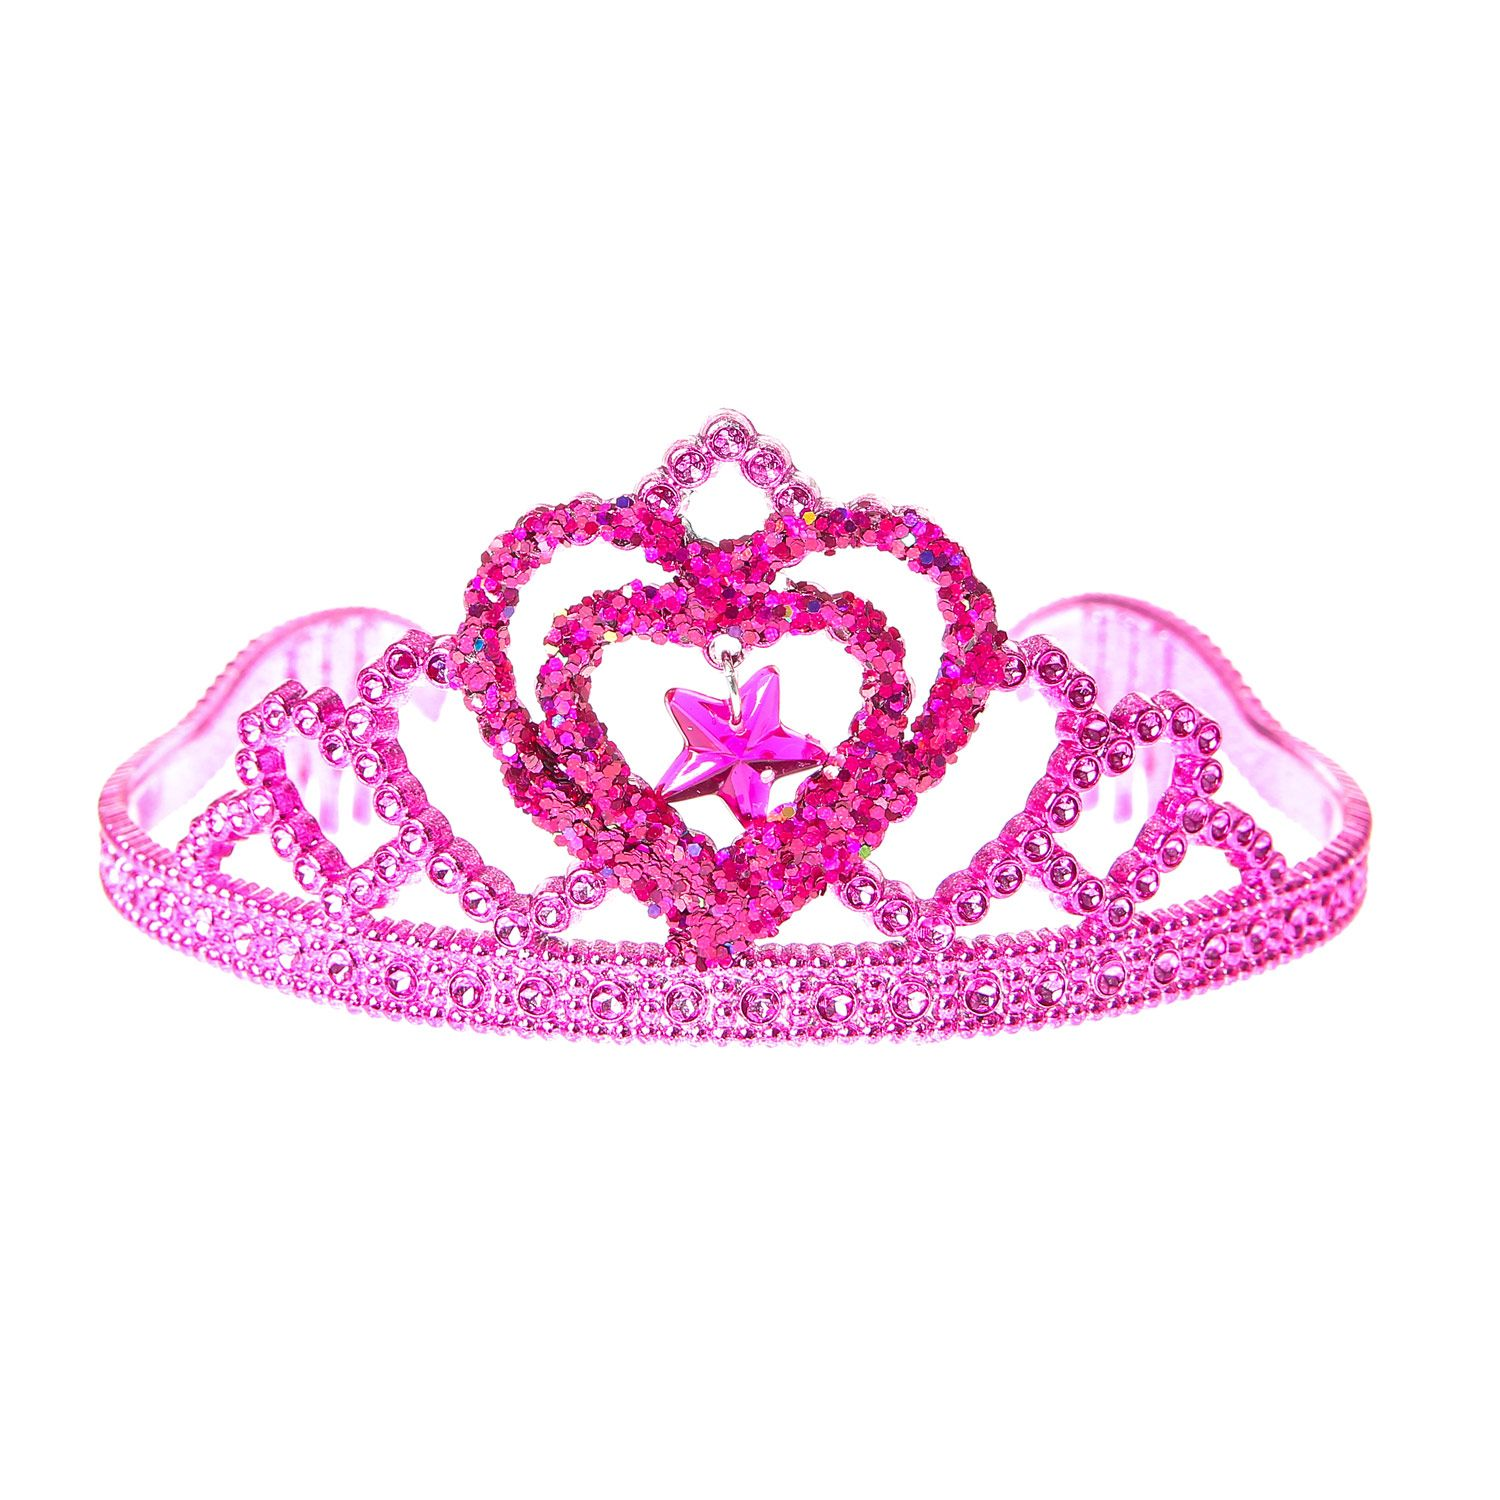 Kids' Tiaras. Showing 40 of 65 results that match your query. Search Product Result. Product - Girls Silver Rhinestone Pageant Queen Tiara Headpiece. Product Image. Price Product - Kids Dream Girls Rhinestone Precious Princess Crown Veil Tiara. Product Image. Price $ Product Title.